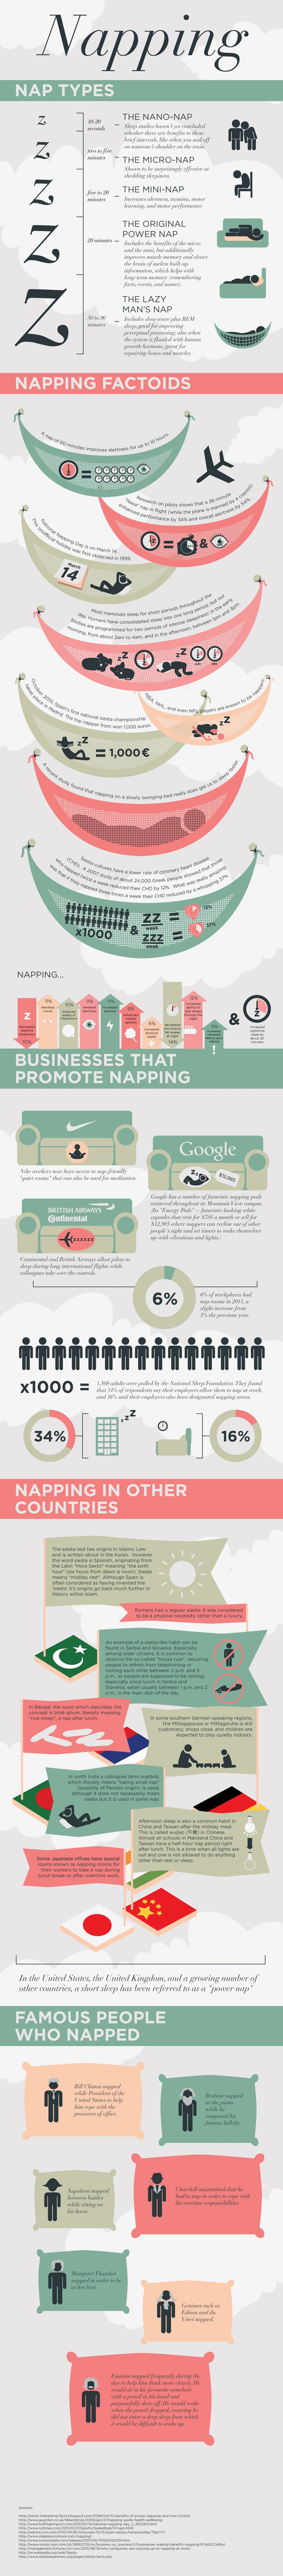 What You Need to Know About Napping (Infographic)